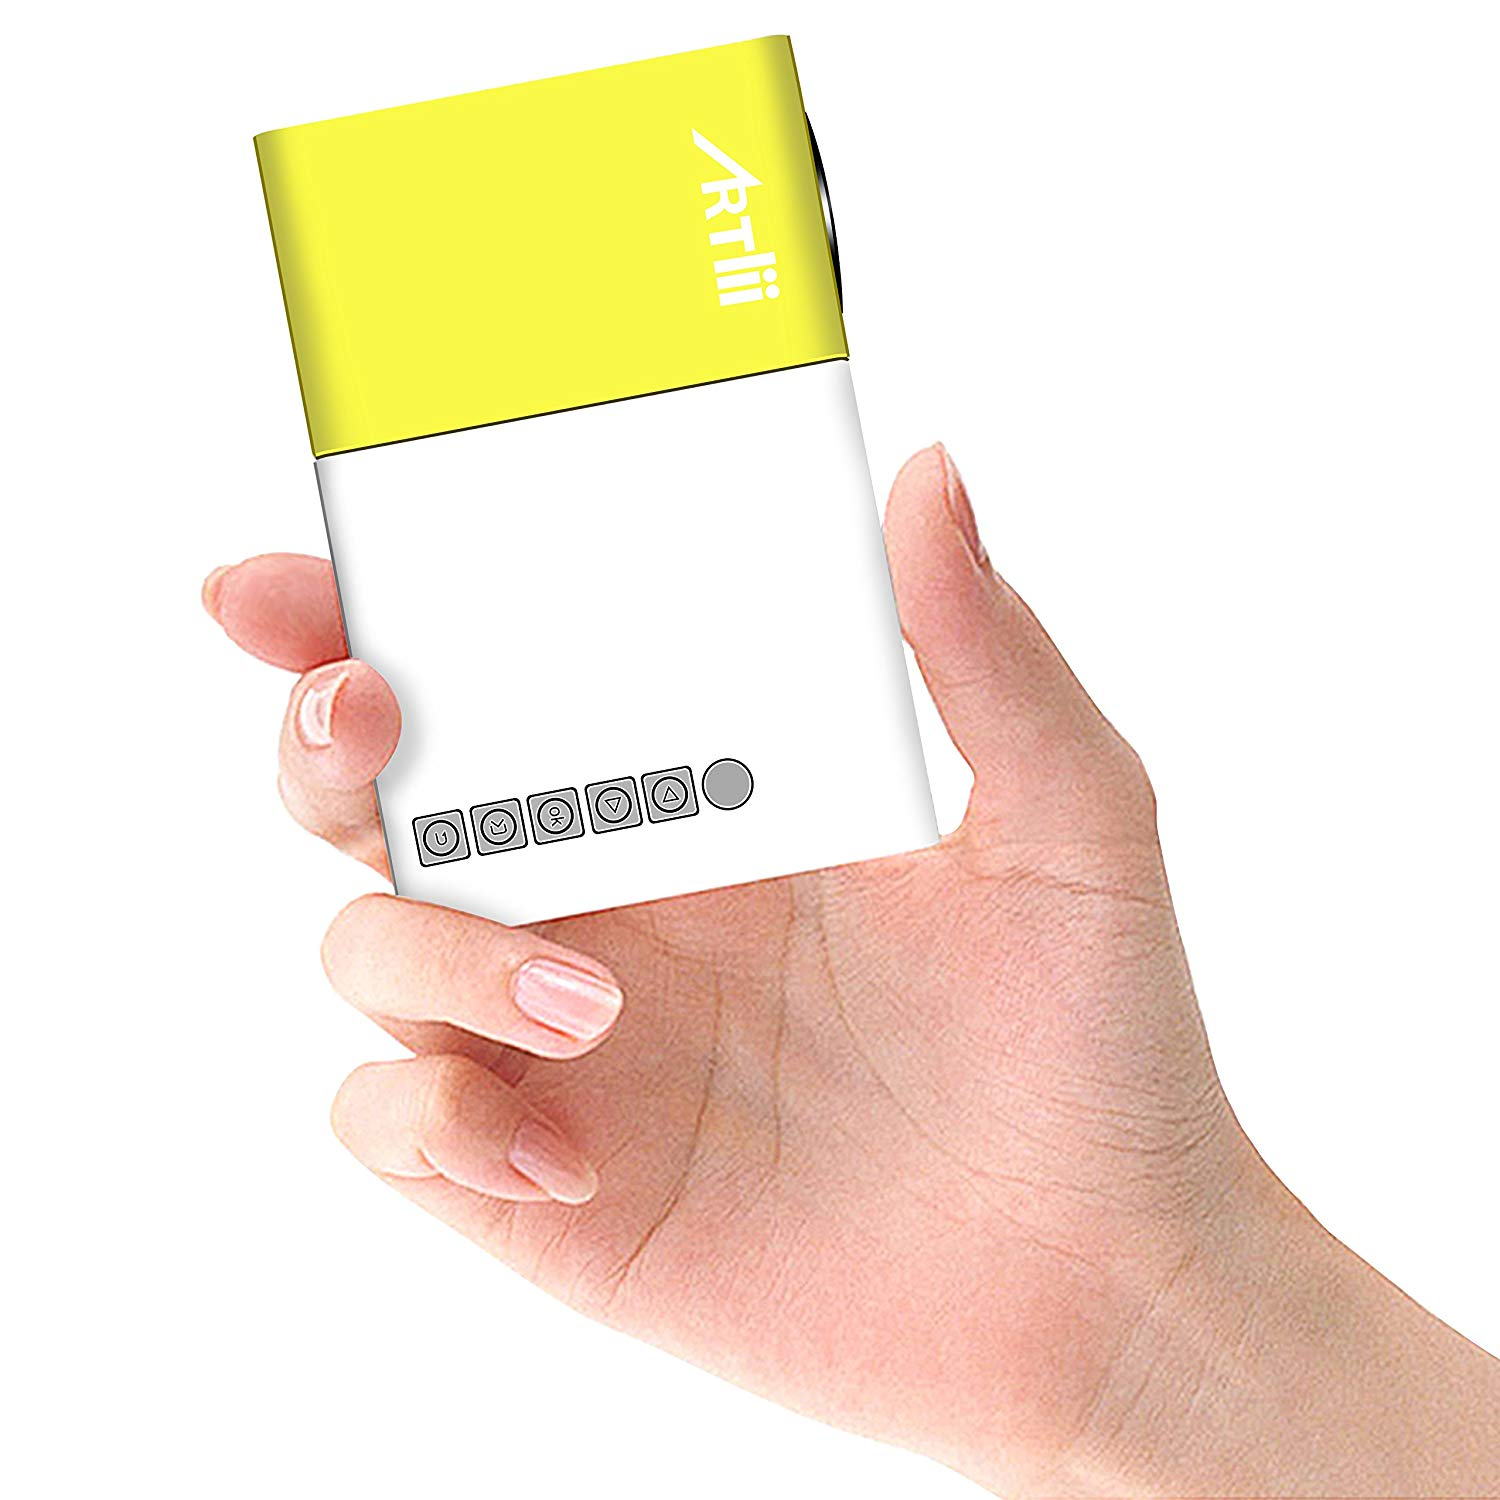 ARTlii iPhone Pico Projector